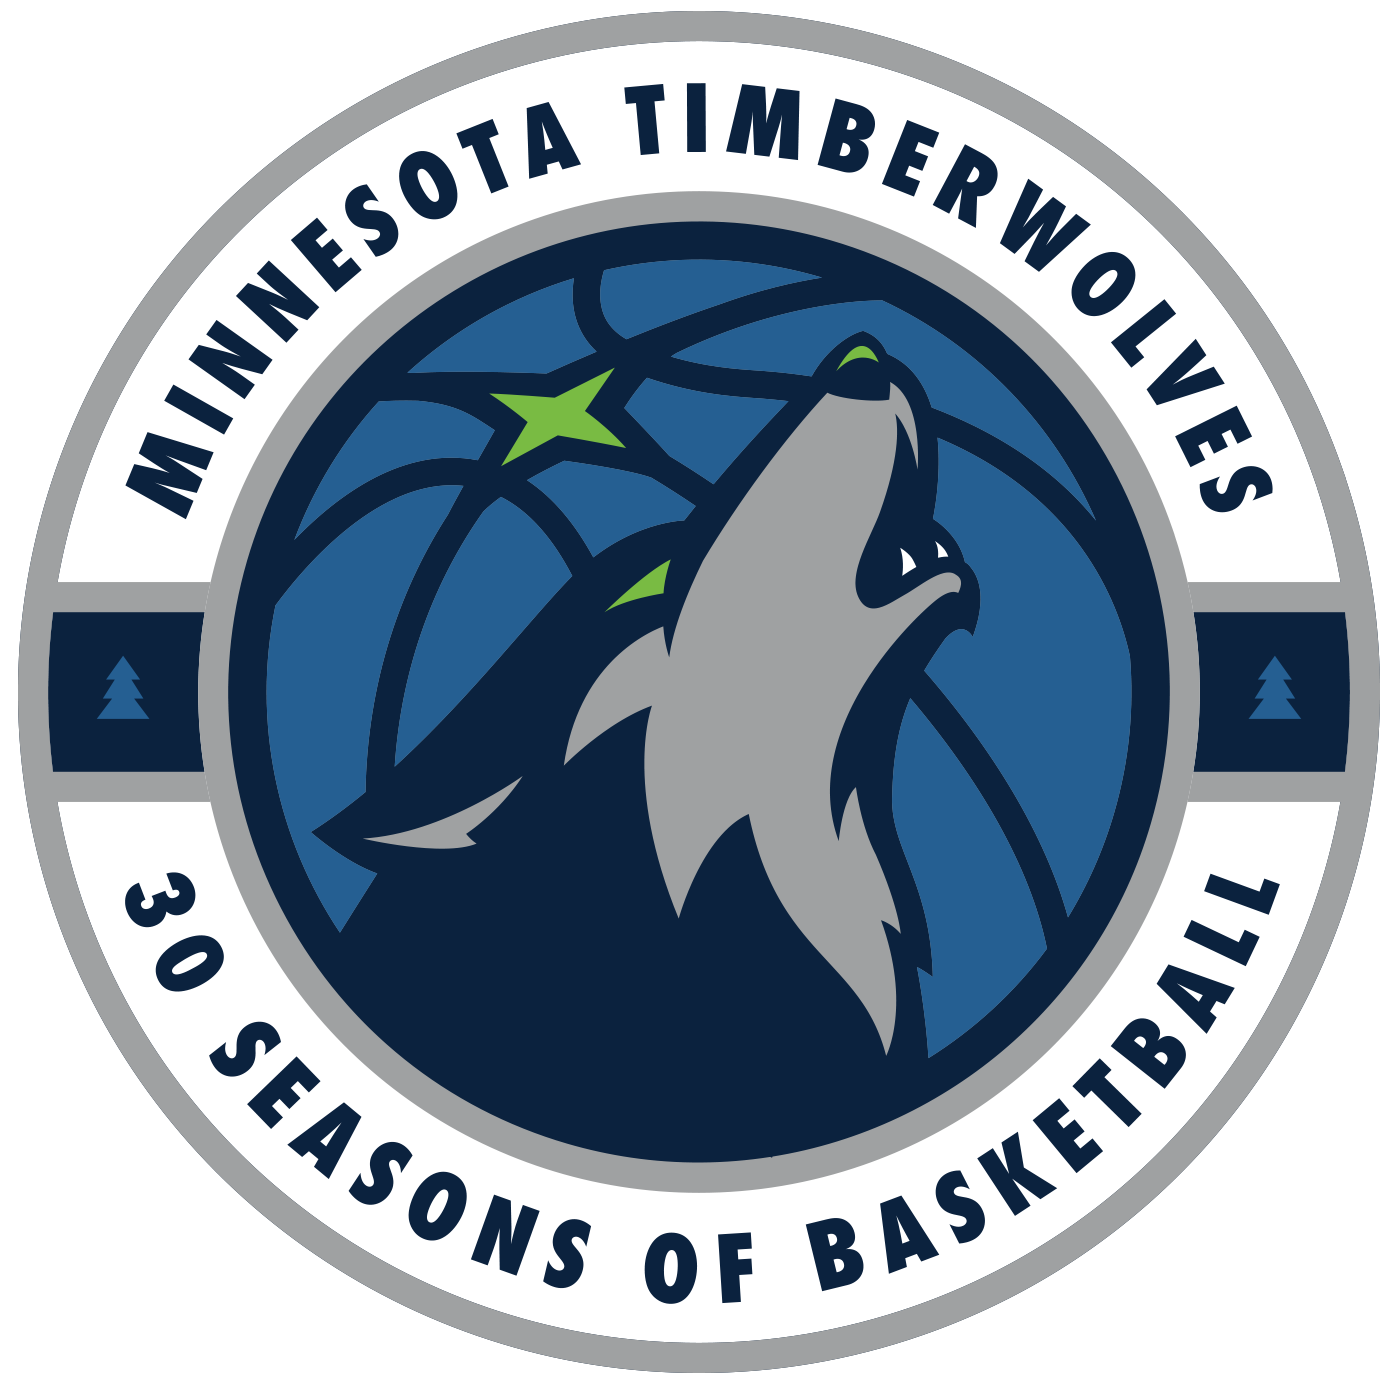 4a64ccfea Welcome to the 30th season of Timberwolves basketball.